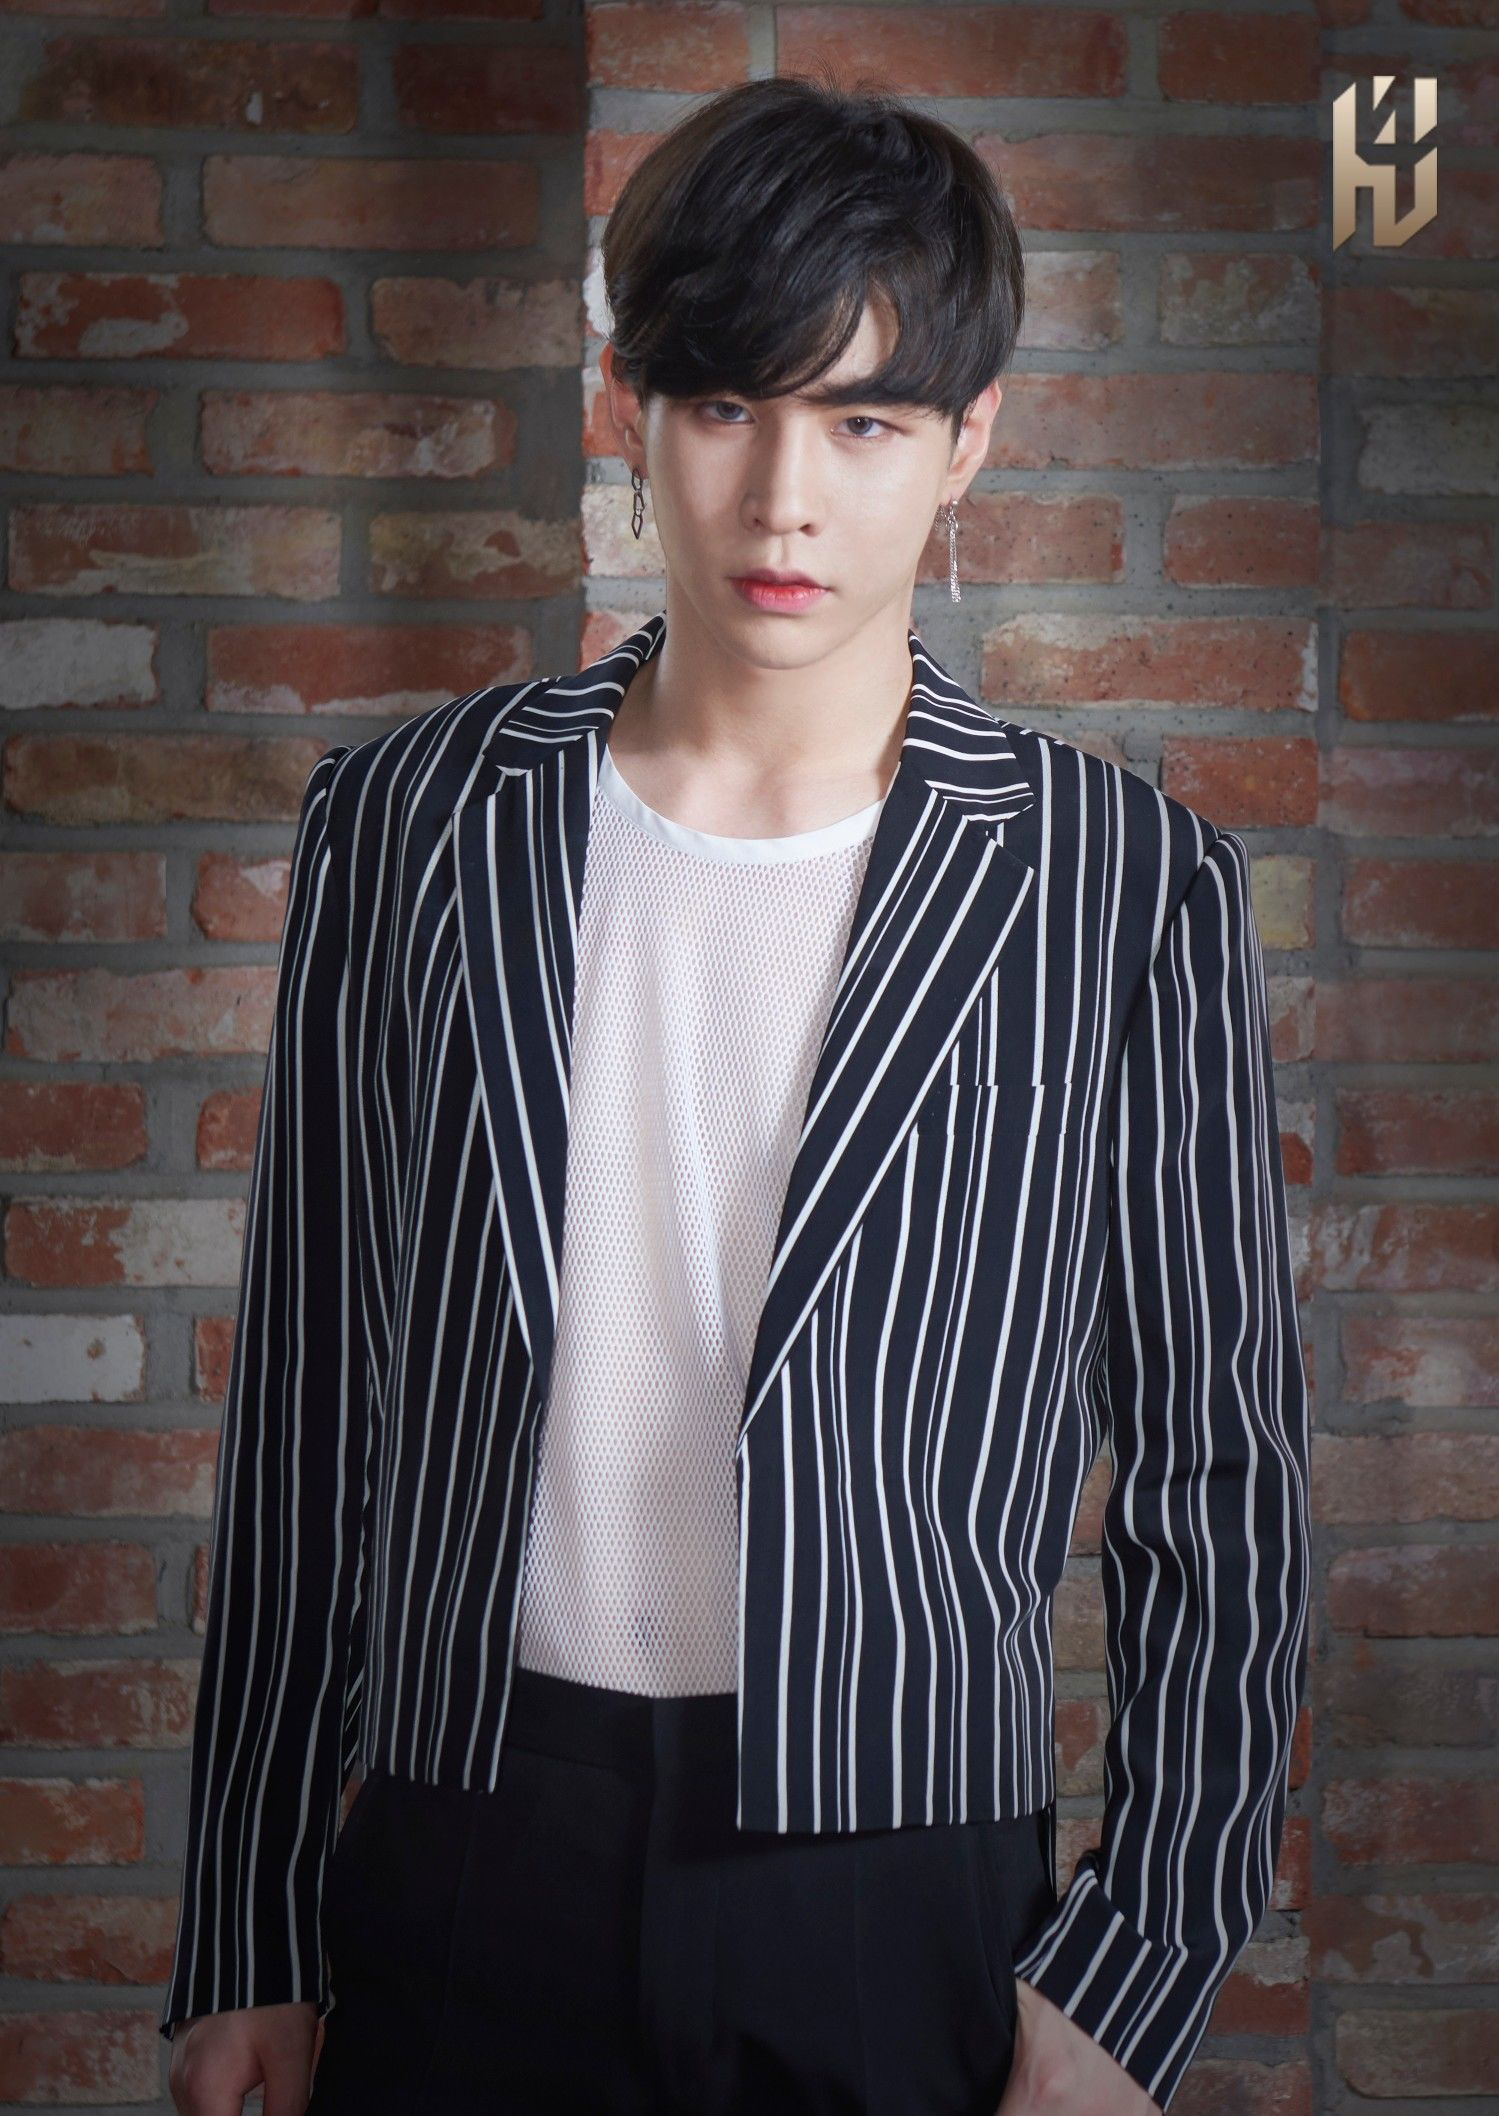 Youngwoong